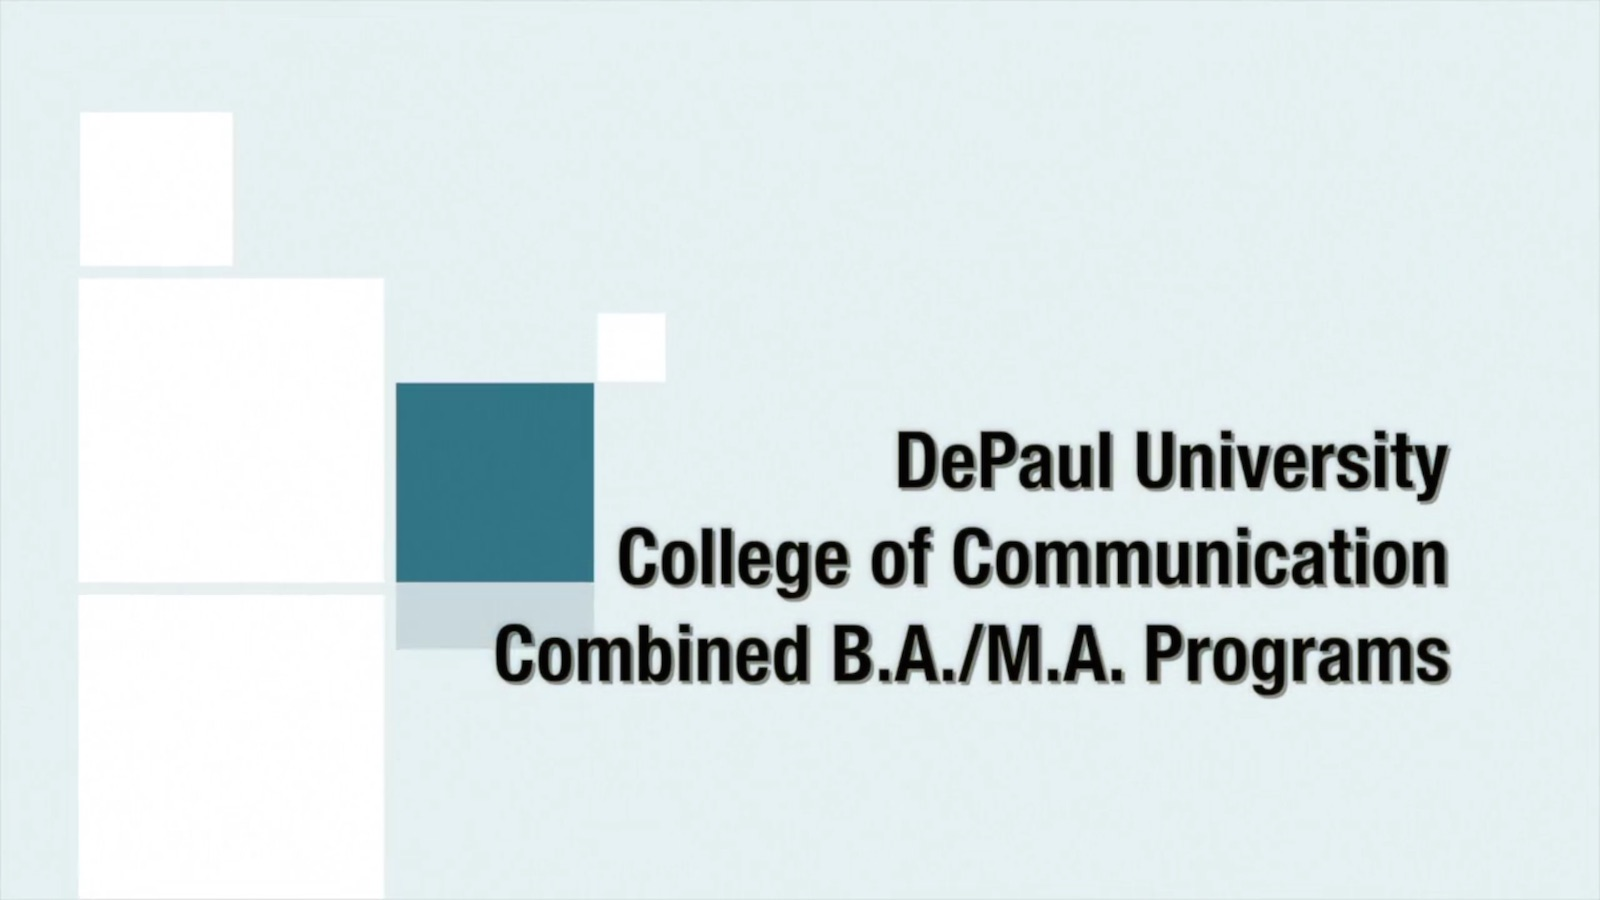 combined degree programs academics depaul university college the college of communication offers several combined degree programs to undergraduate students who have achieved a high level of academic success